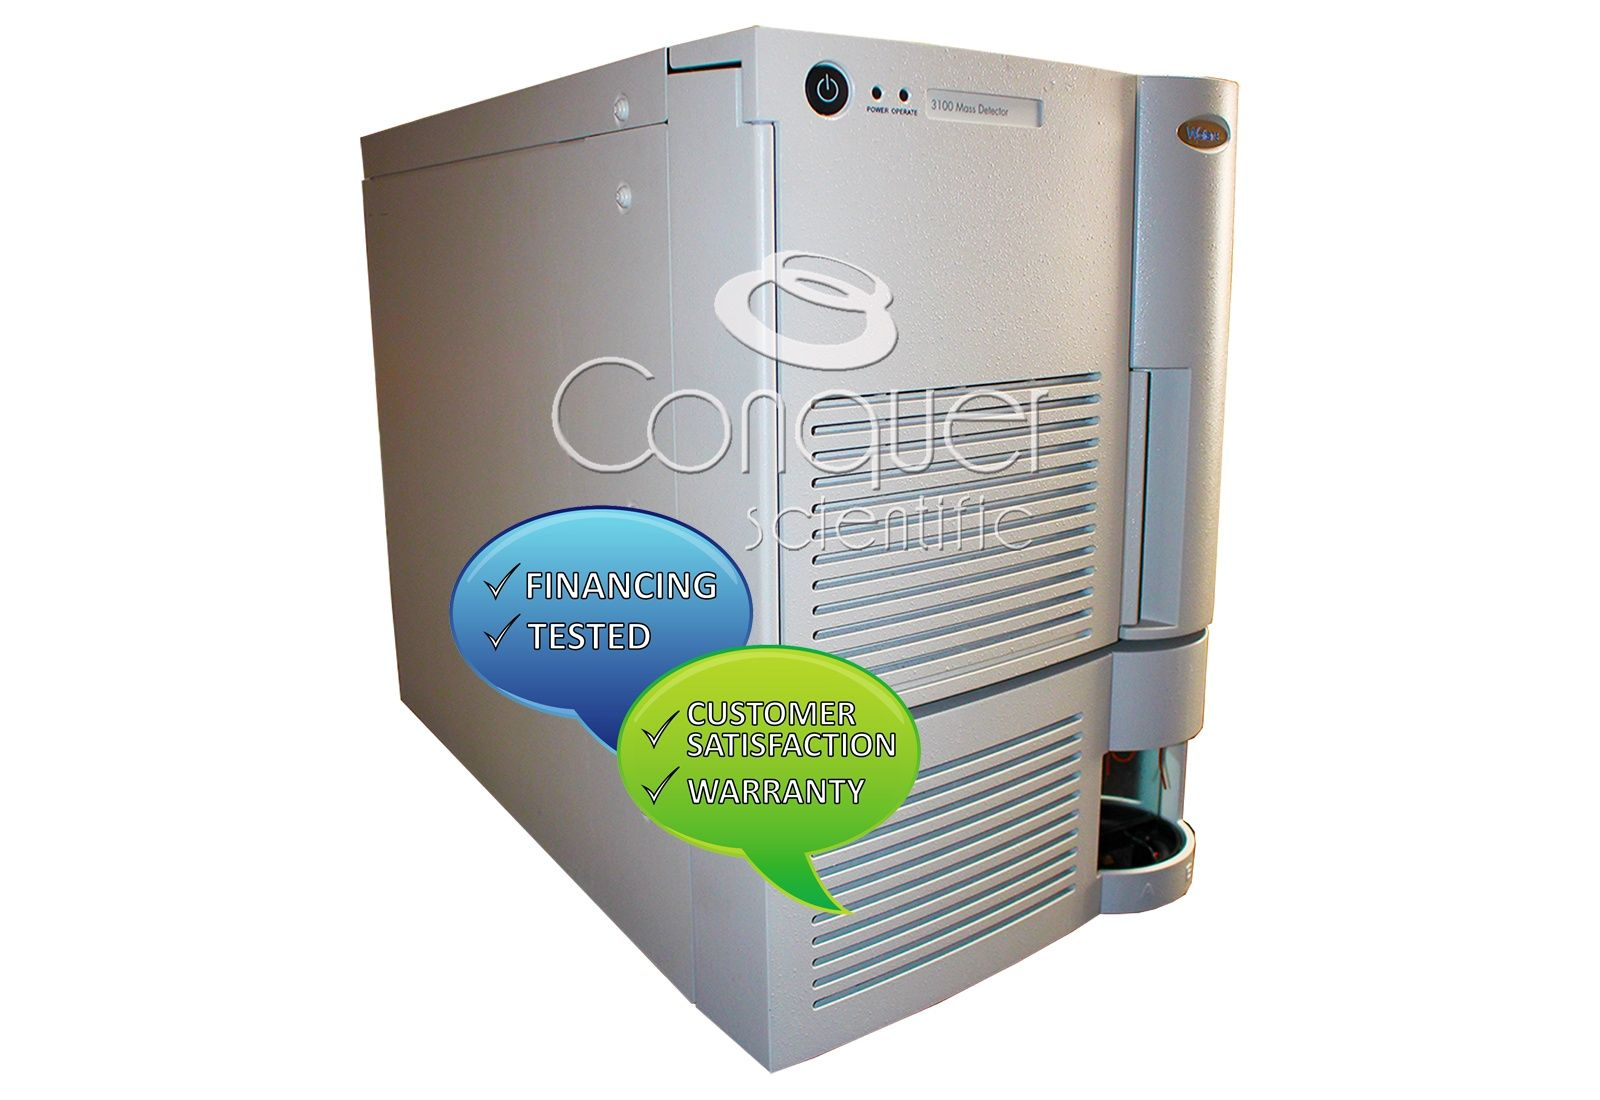 Waters 3100 Mass Detector PREP LCMS System